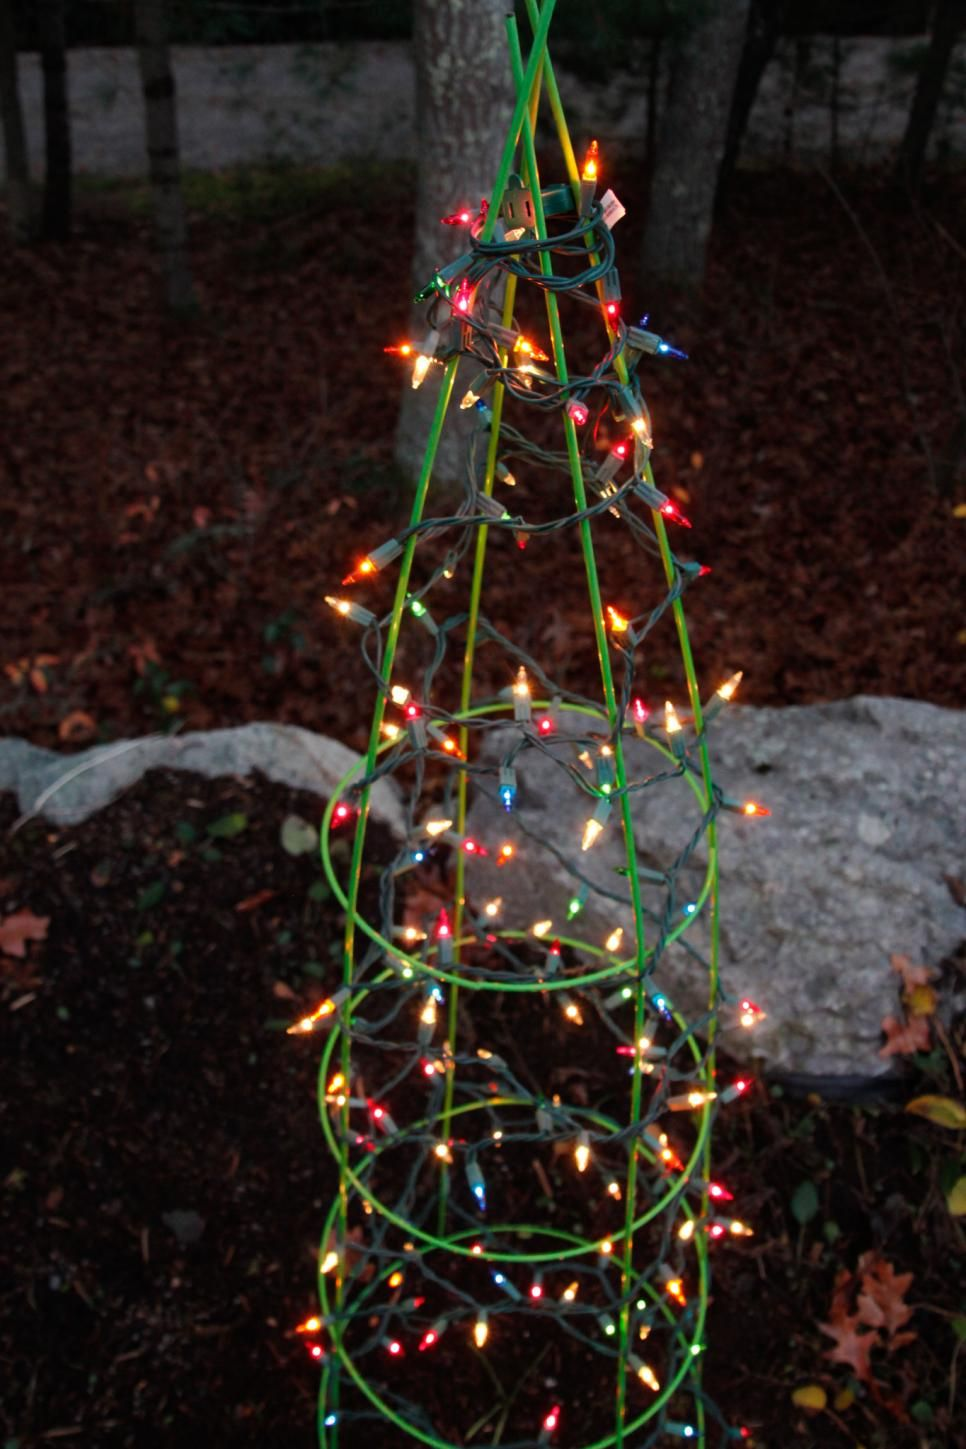 hgtv offers tips for using holiday lights for landscape lighting year round